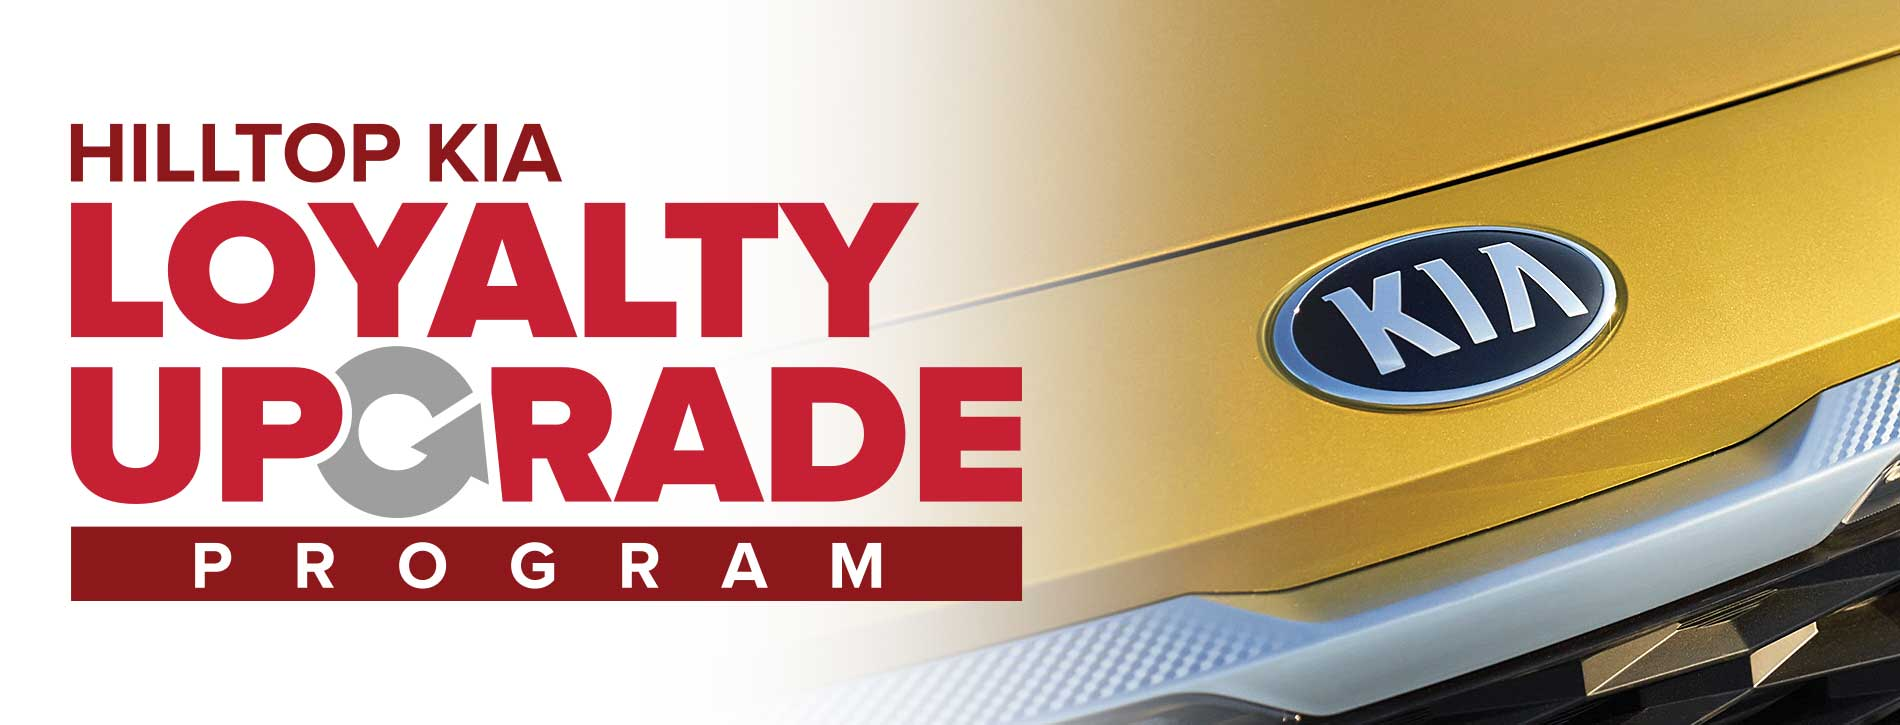 Hilltop Kia Loyalty Upgrade Program